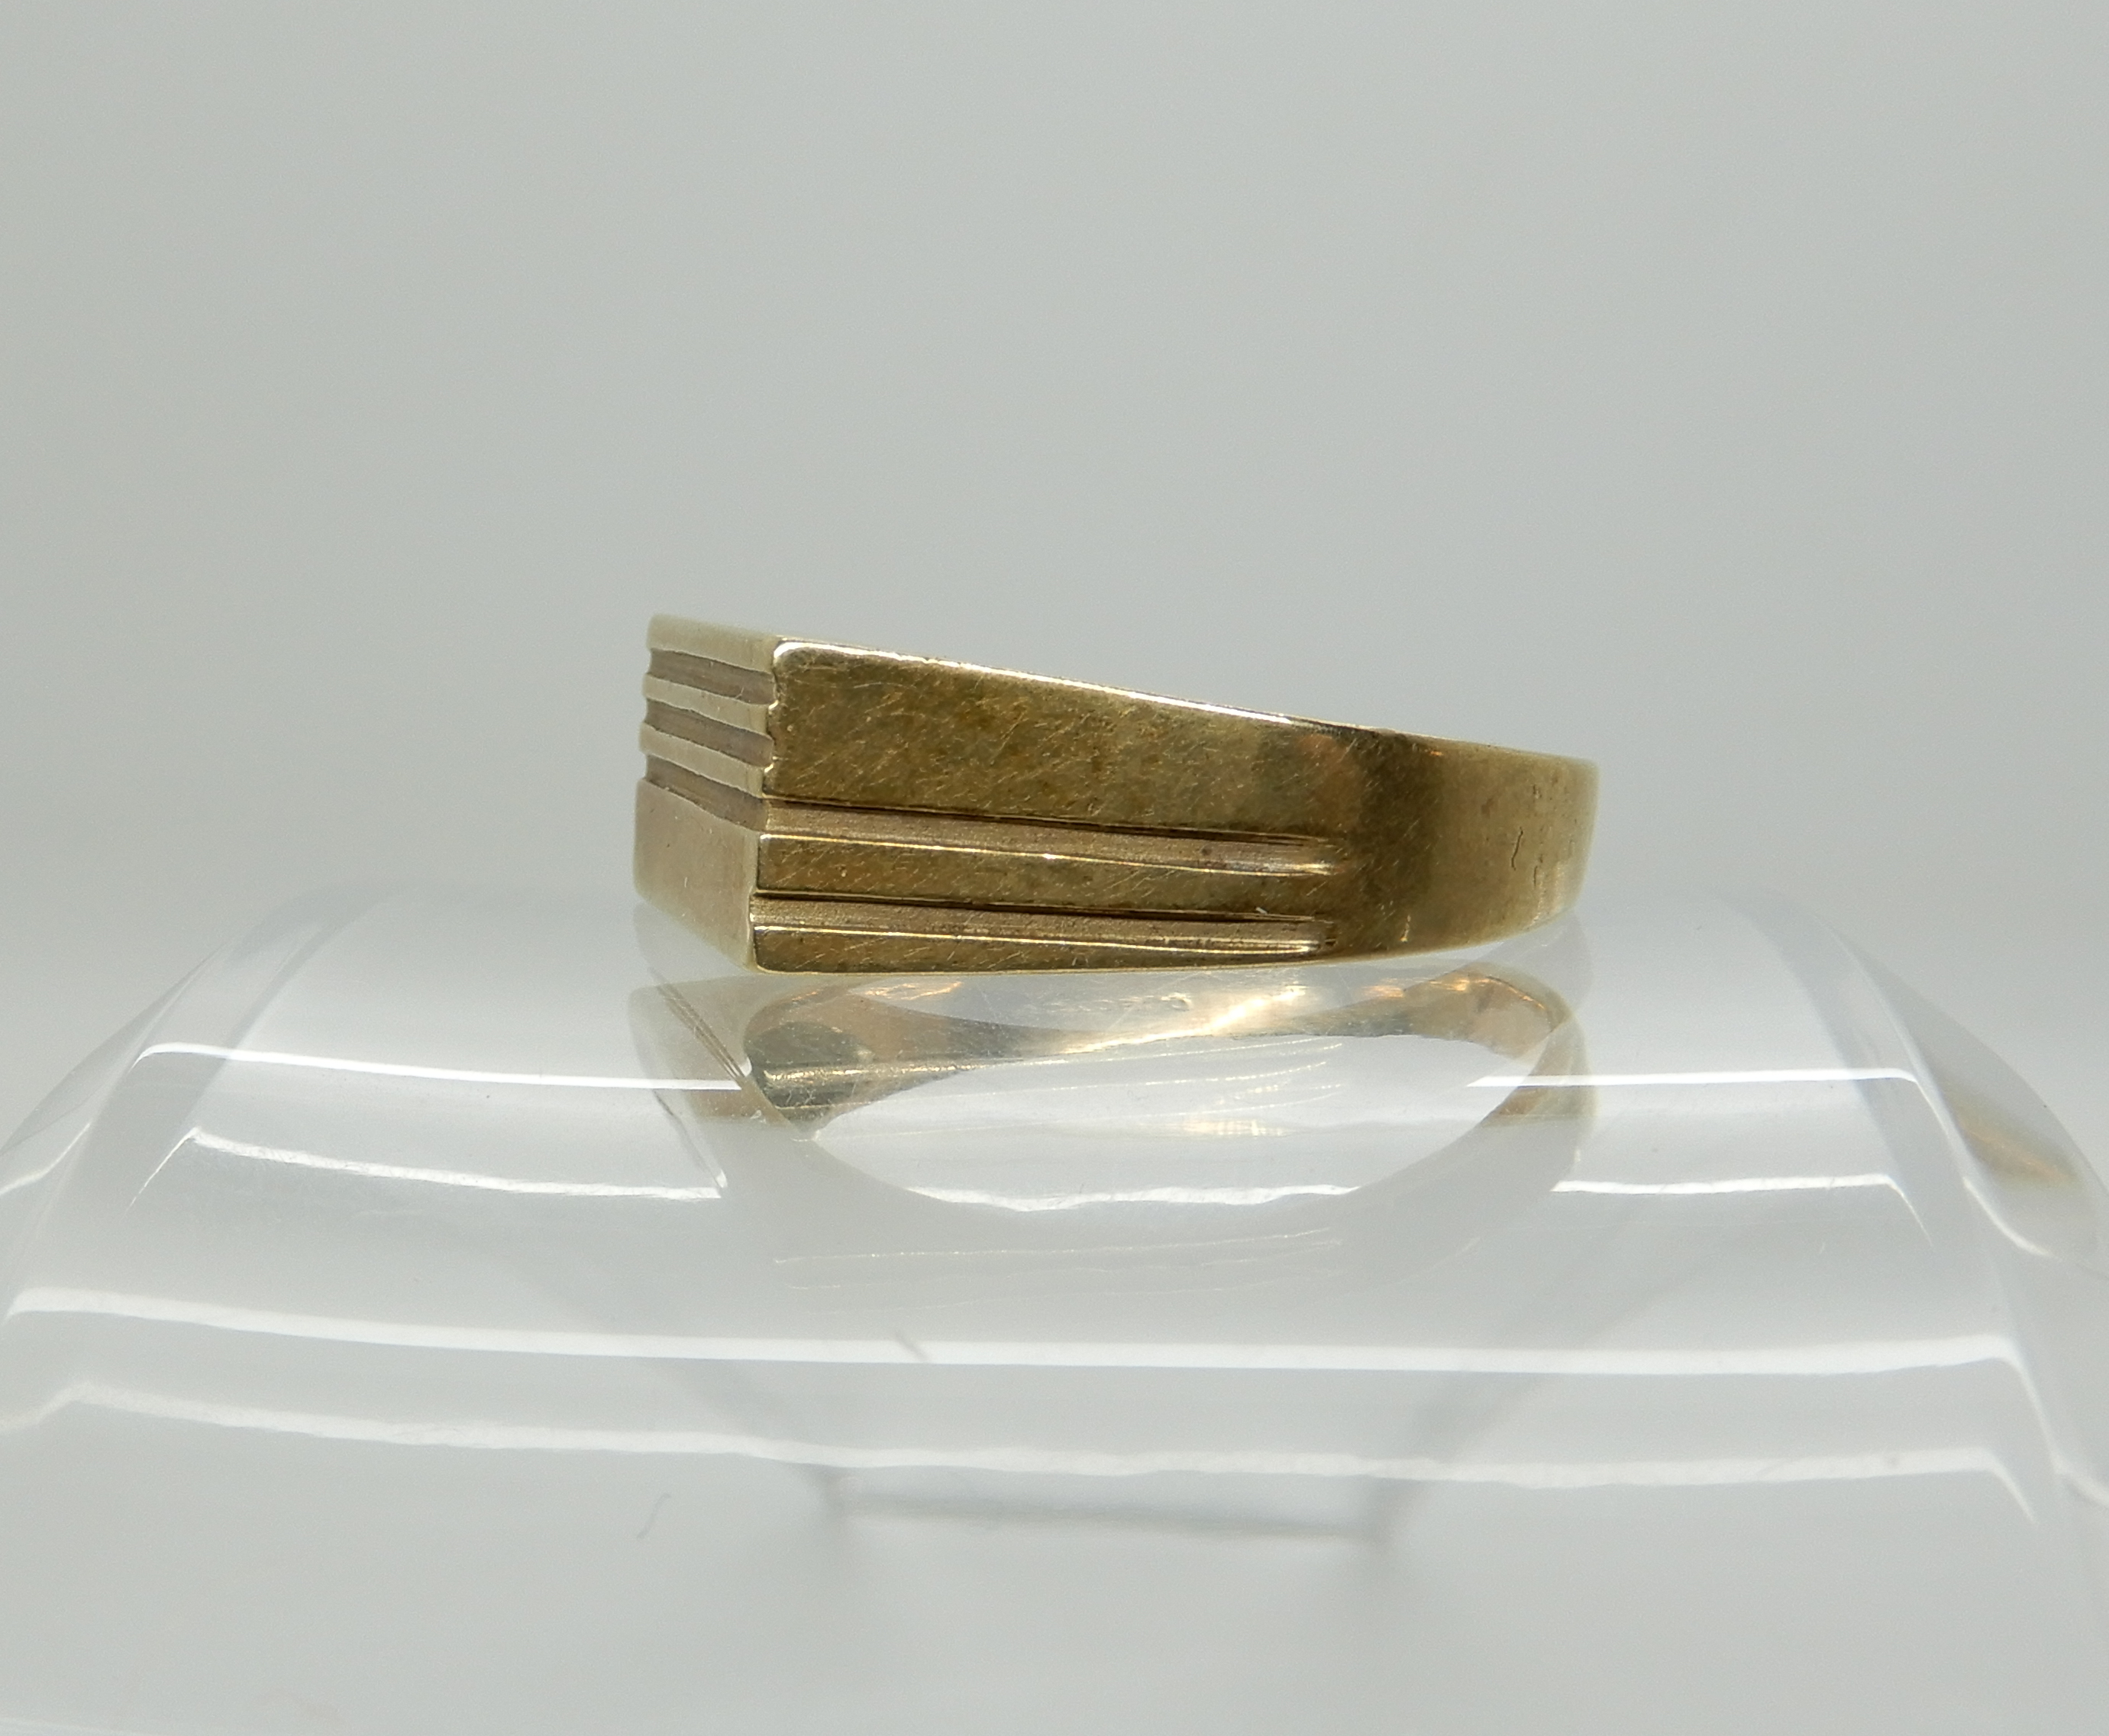 Lot 6 - A 9ct gold gents signet ring size X1/2, weight 6.4gms Condition Report: Available upon request